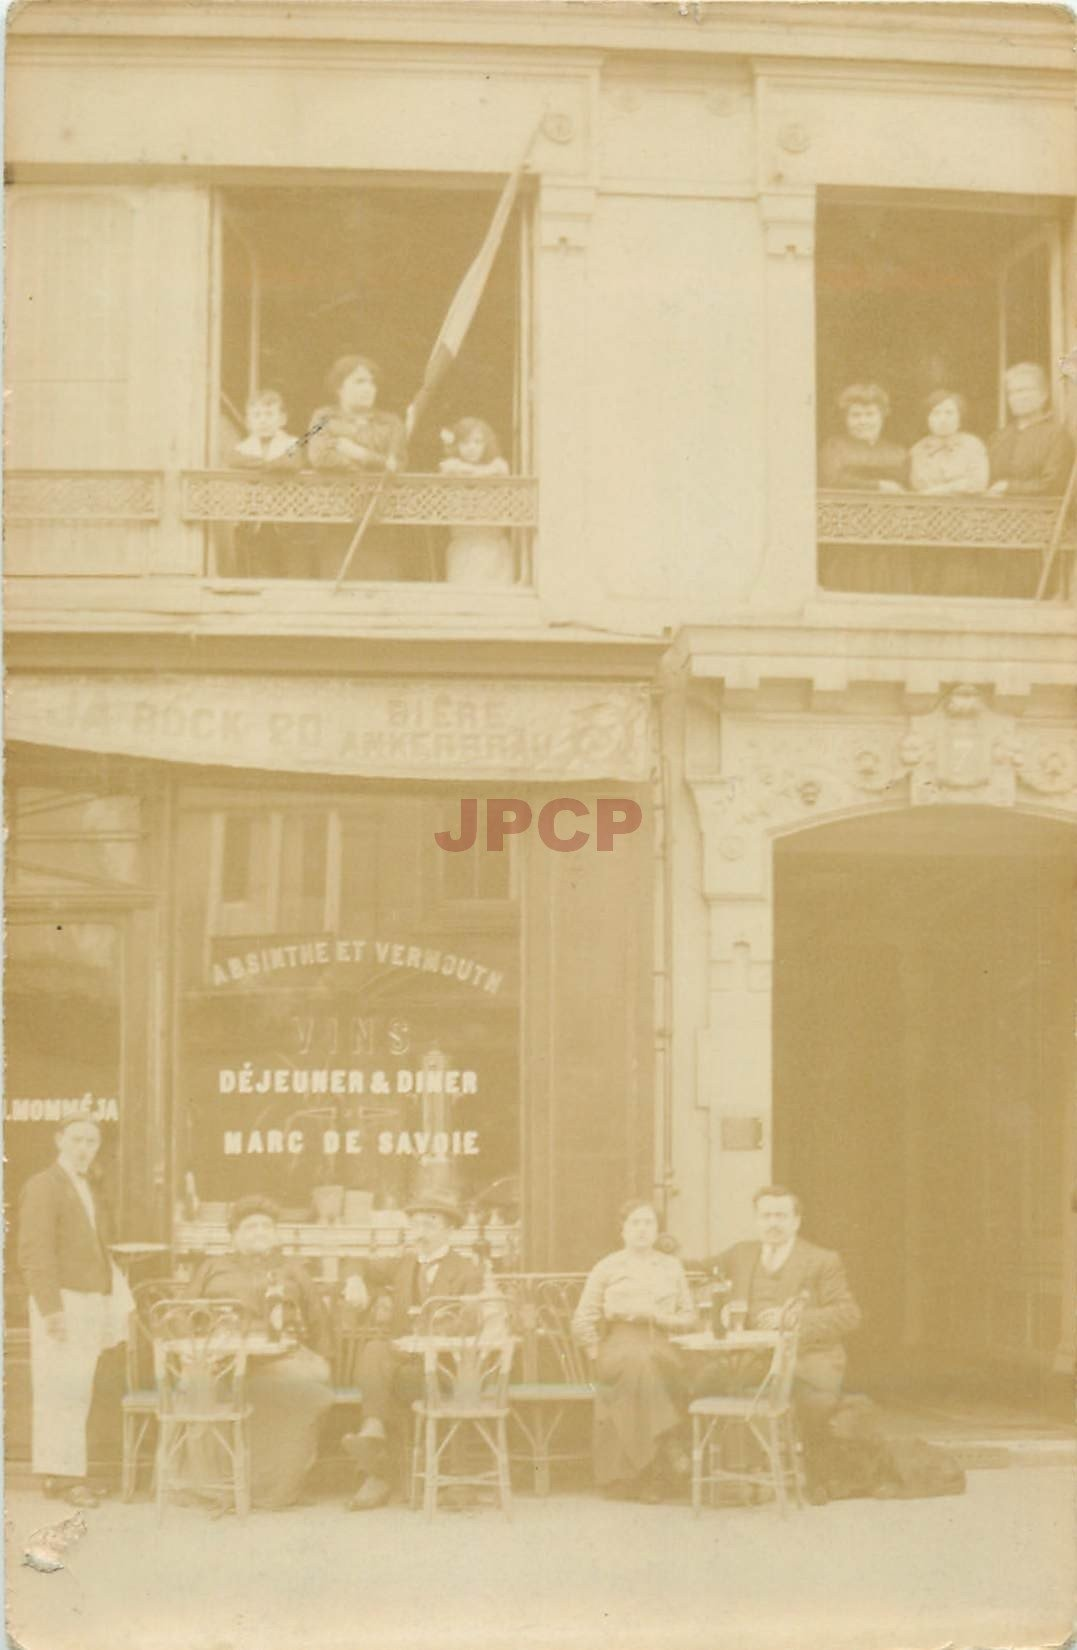 PARIS 19. Café Momméga au 7 Boulevard Mac Donald. Photo carte postale ancienne 1915